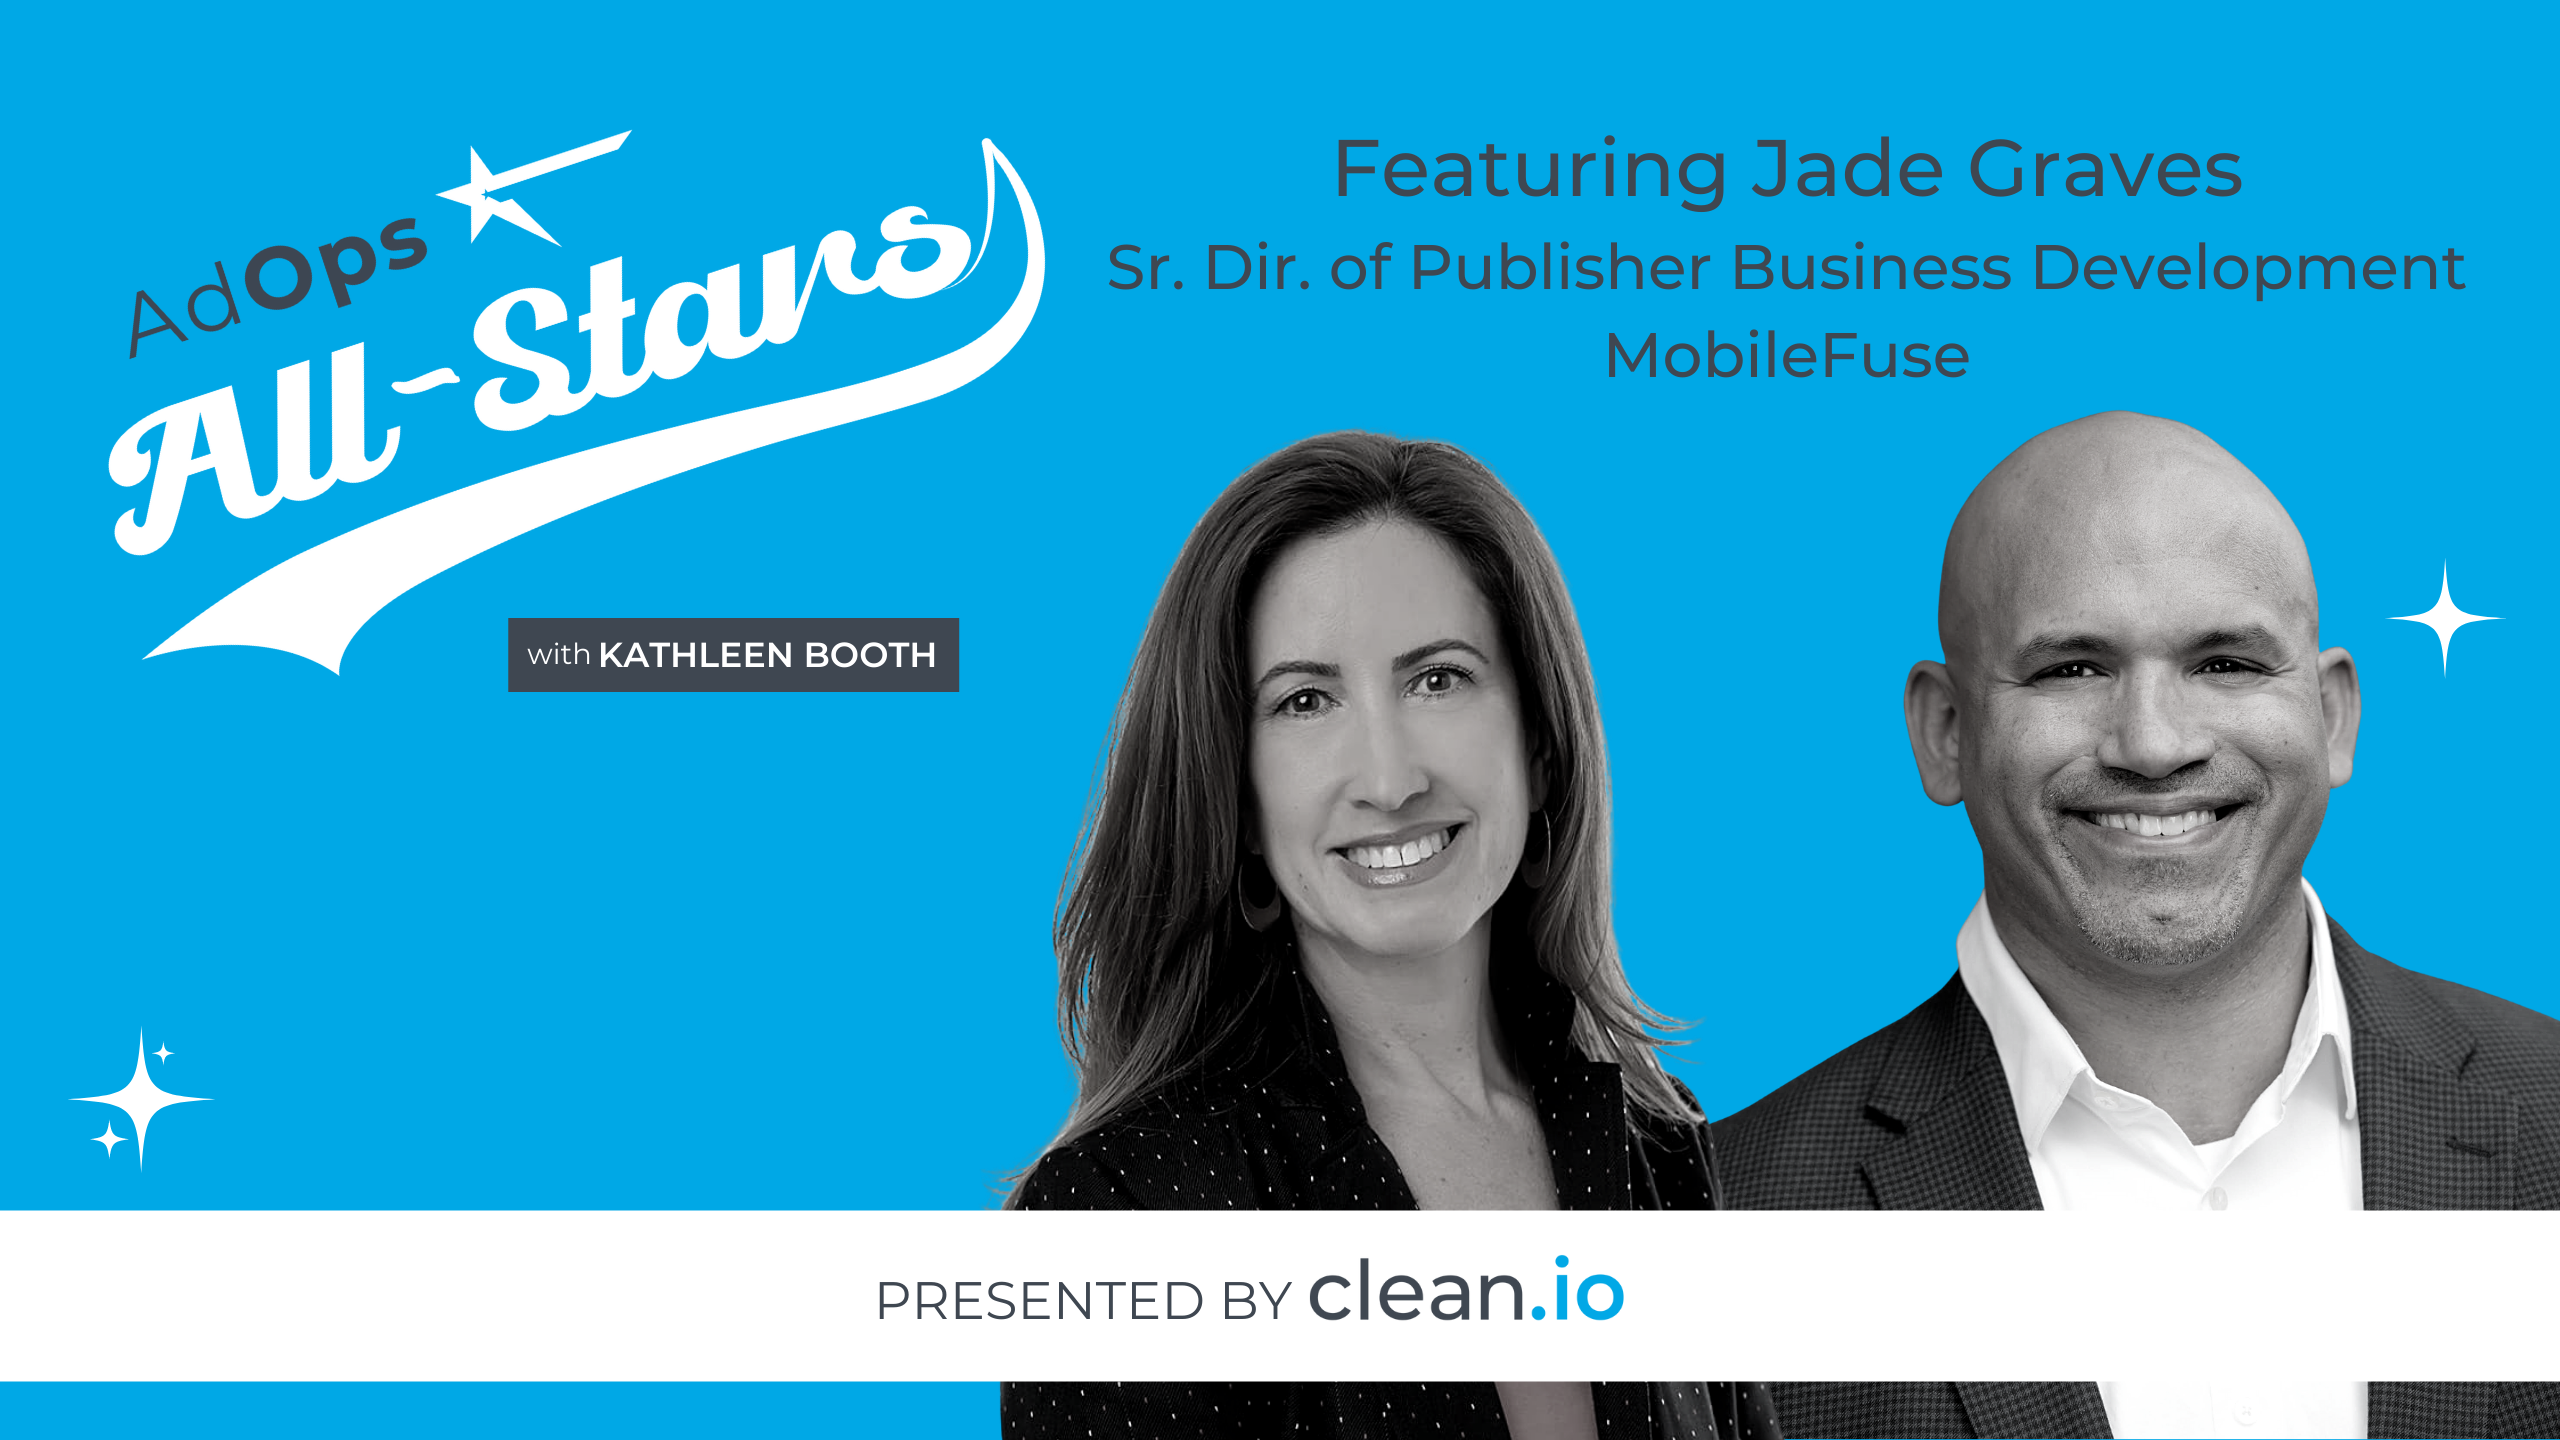 Ad Ops All Stars: Jade Graves, MobileFuse